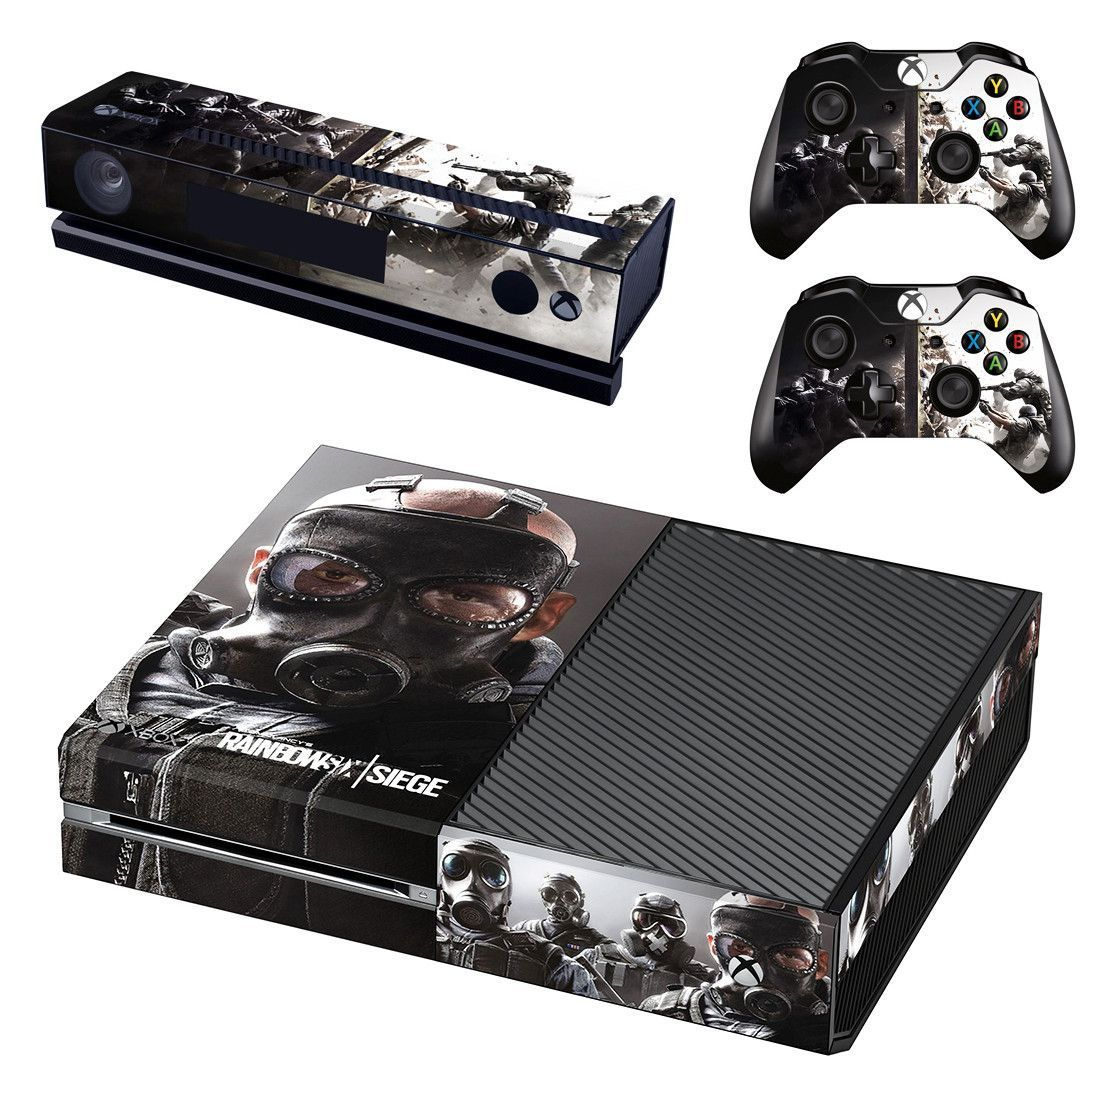 Video Games & Consoles Video Game Accessories Xbox One X Weed 420 2 Skin Sticker Console Decal Vinyl Xbox Controller Carefully Selected Materials